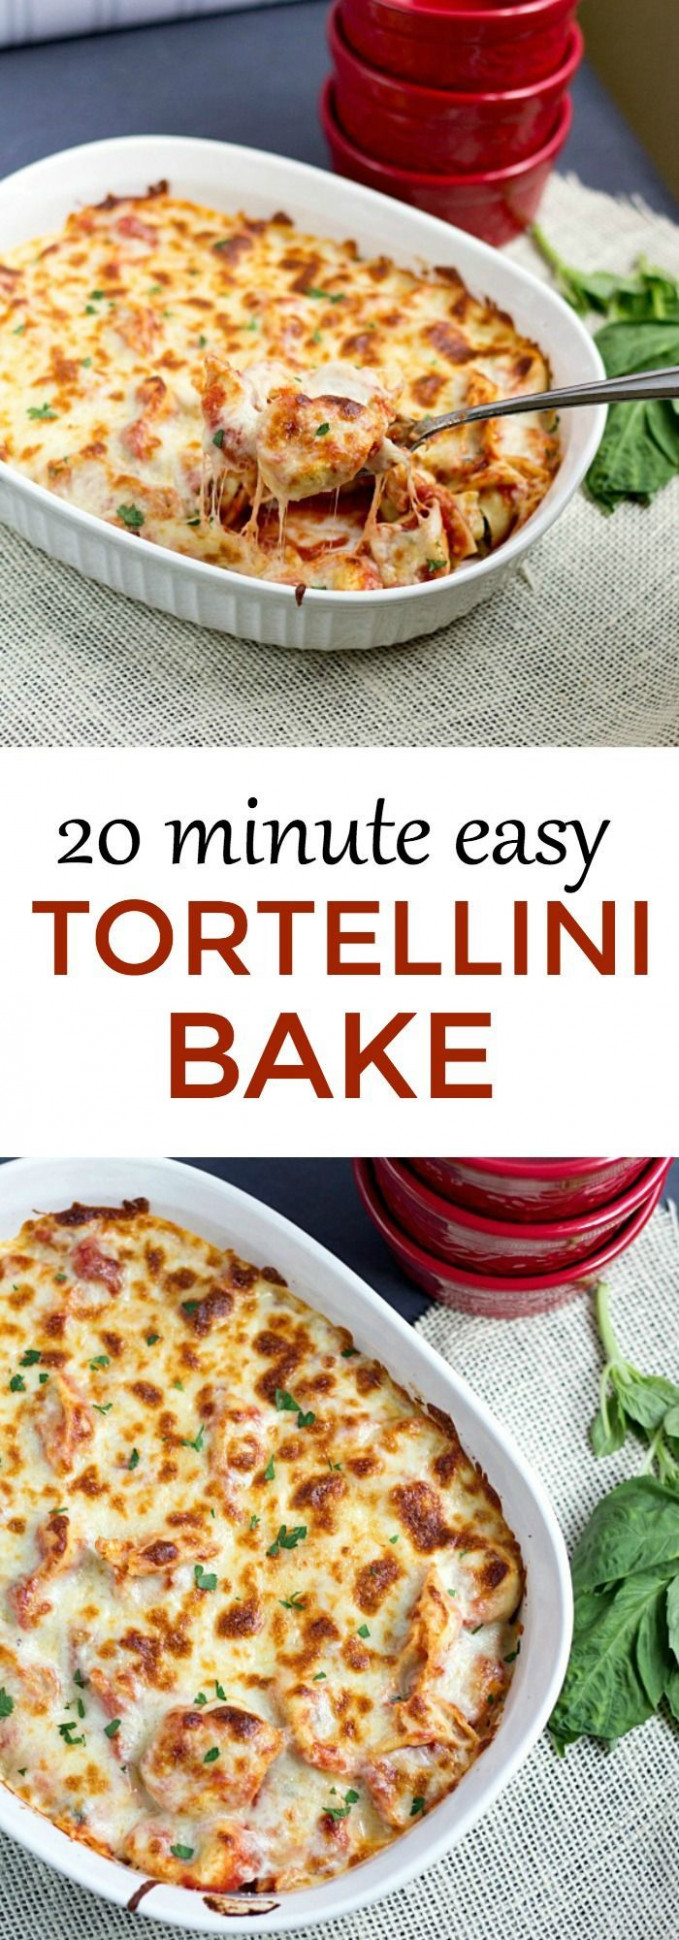 Twenty Minute Easy Tortellini Bake | Recipe | Eat This ...